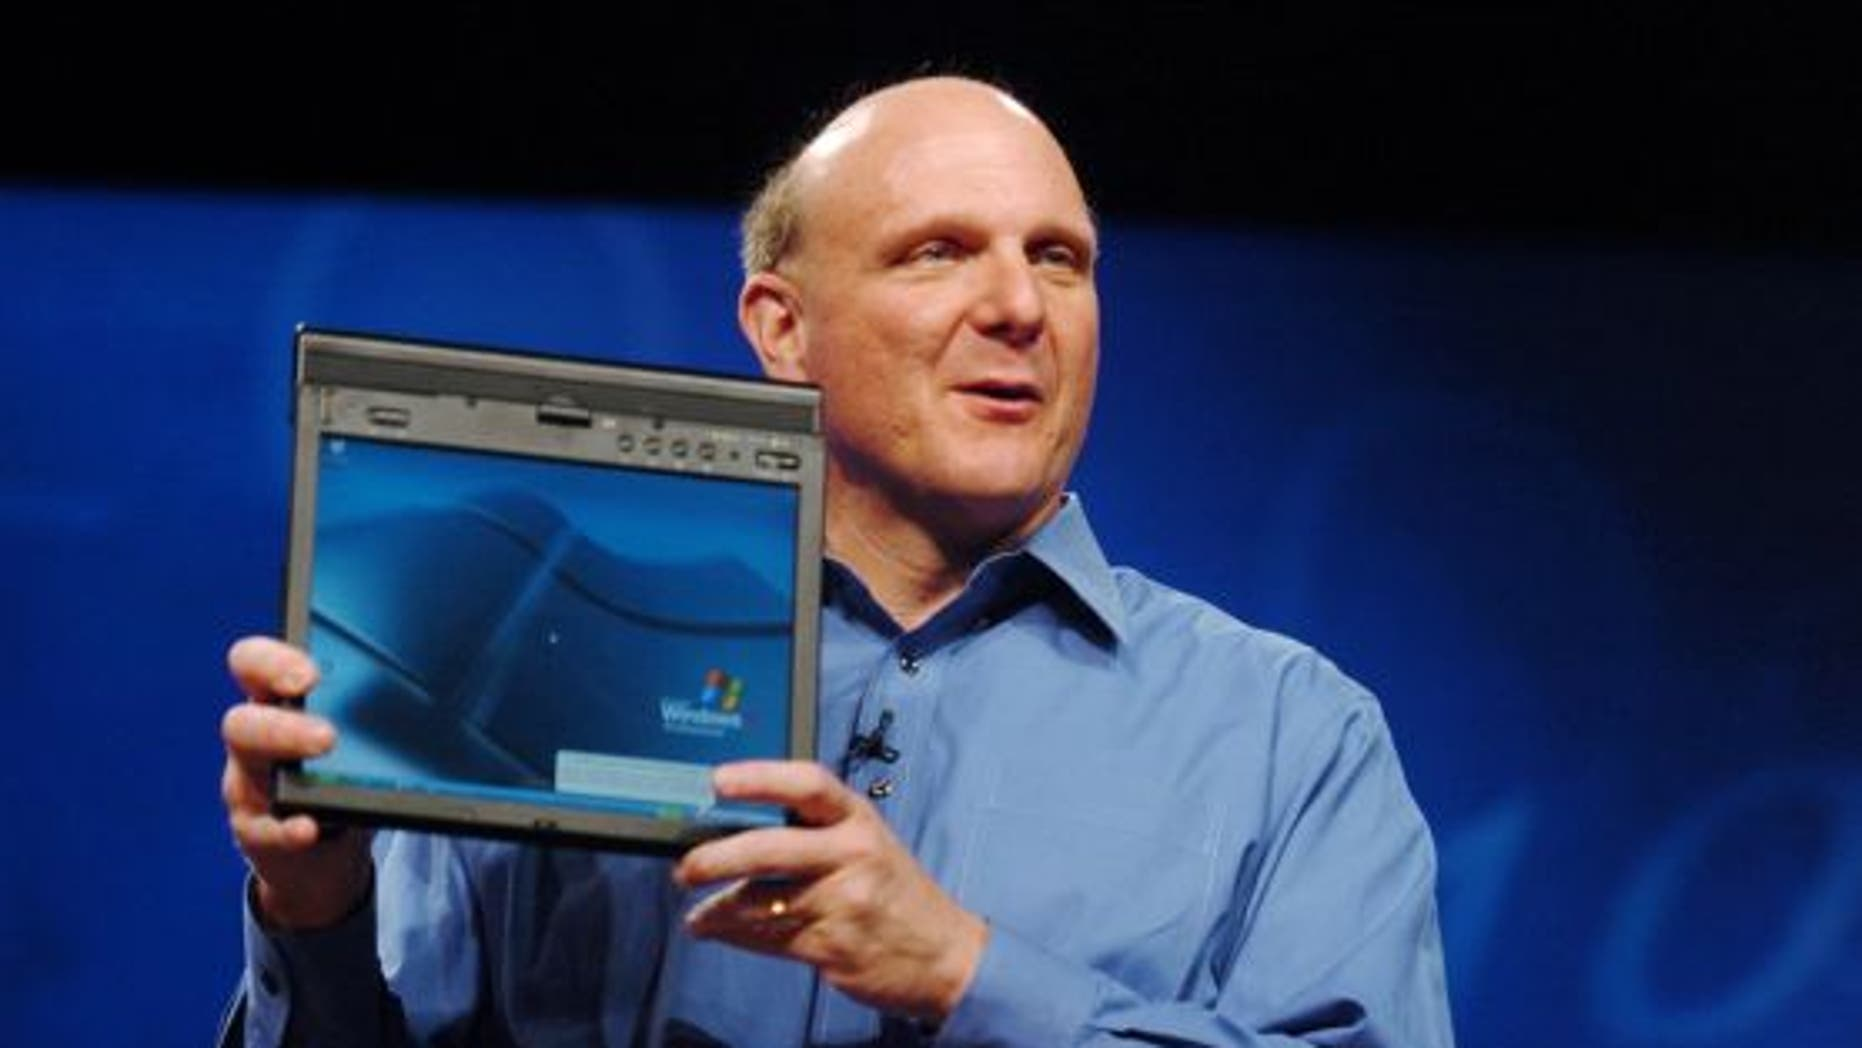 Microsoft CEO Steve Ballmer unveils the new ThinkPad X41 Tablet, a powerful business PC from Lenovo,  at Microsoft's TechEd 2005 held Monday June 6, 2005, at the Orange County Convention Center, Orlando, Florida.